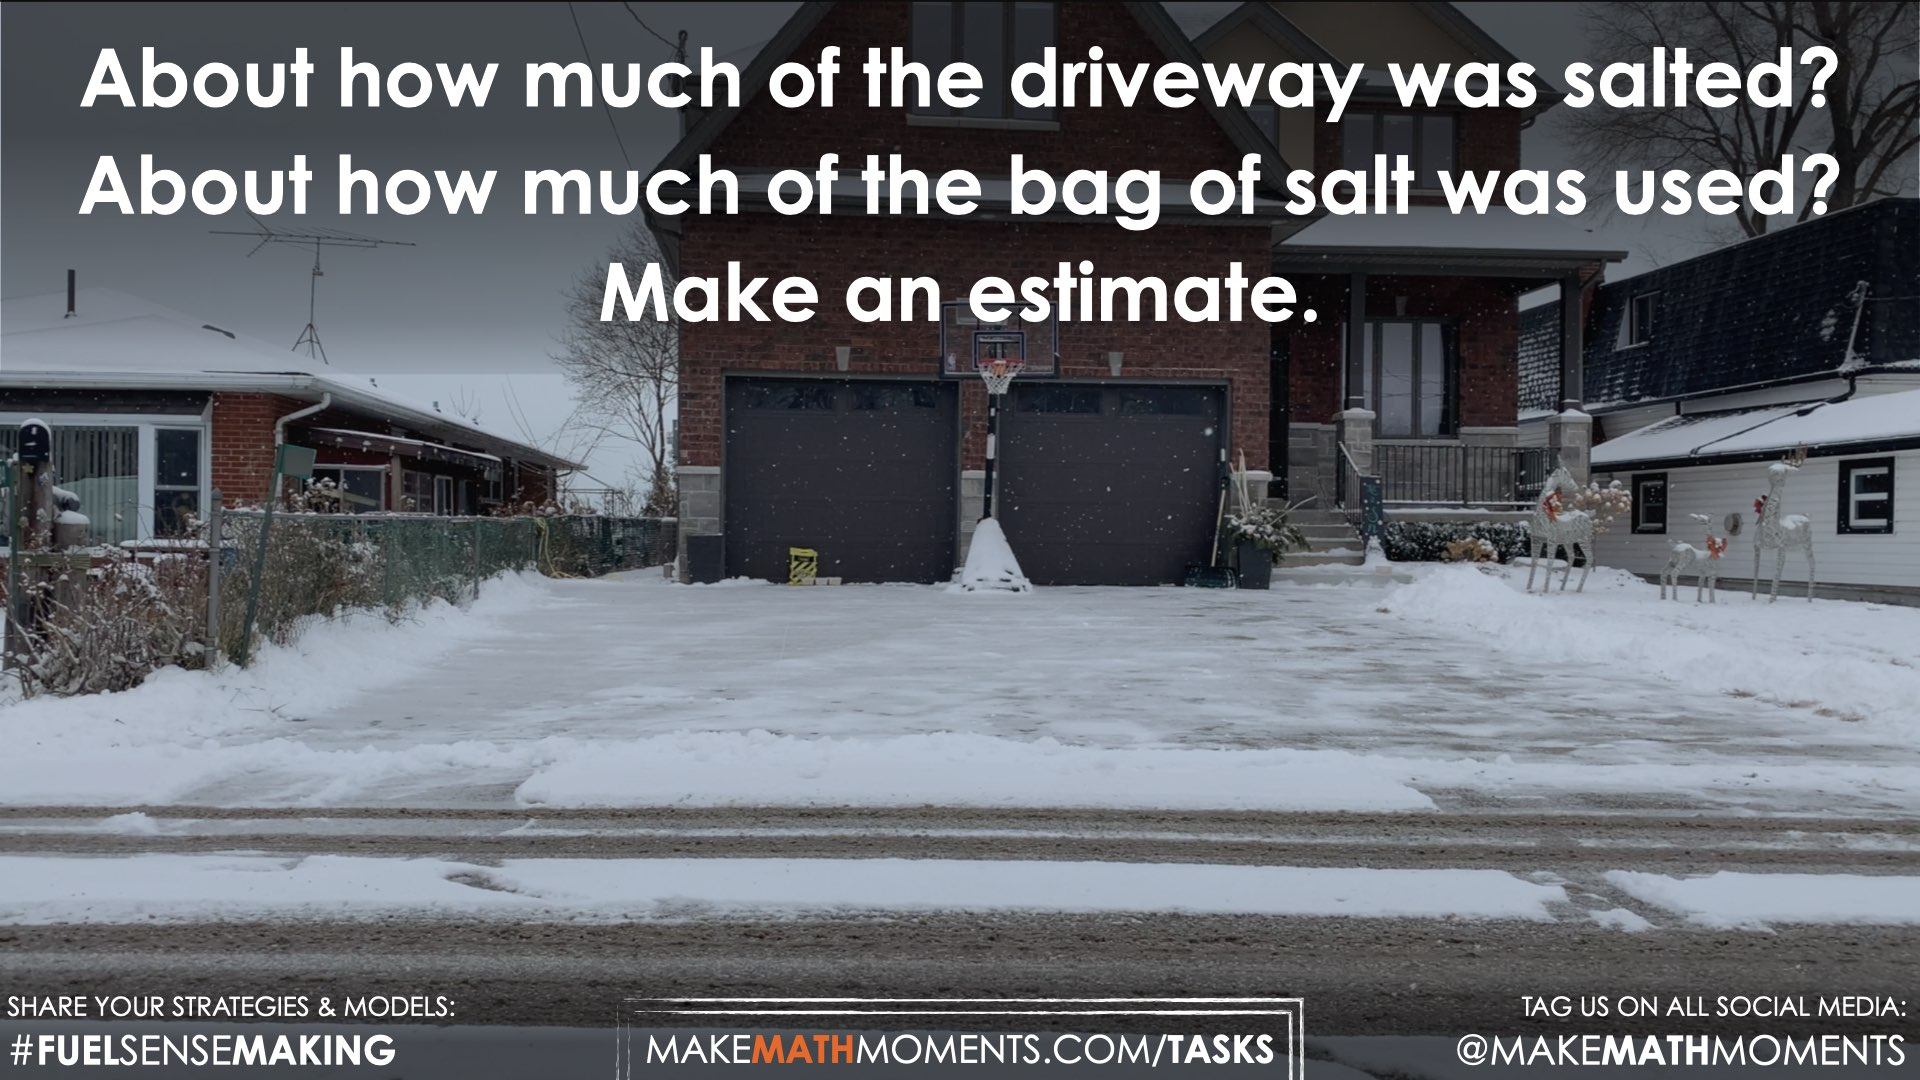 Salting-The-Driveway-Day-1-03-Spark-Estimate-Prompt-Image.001.jpeg